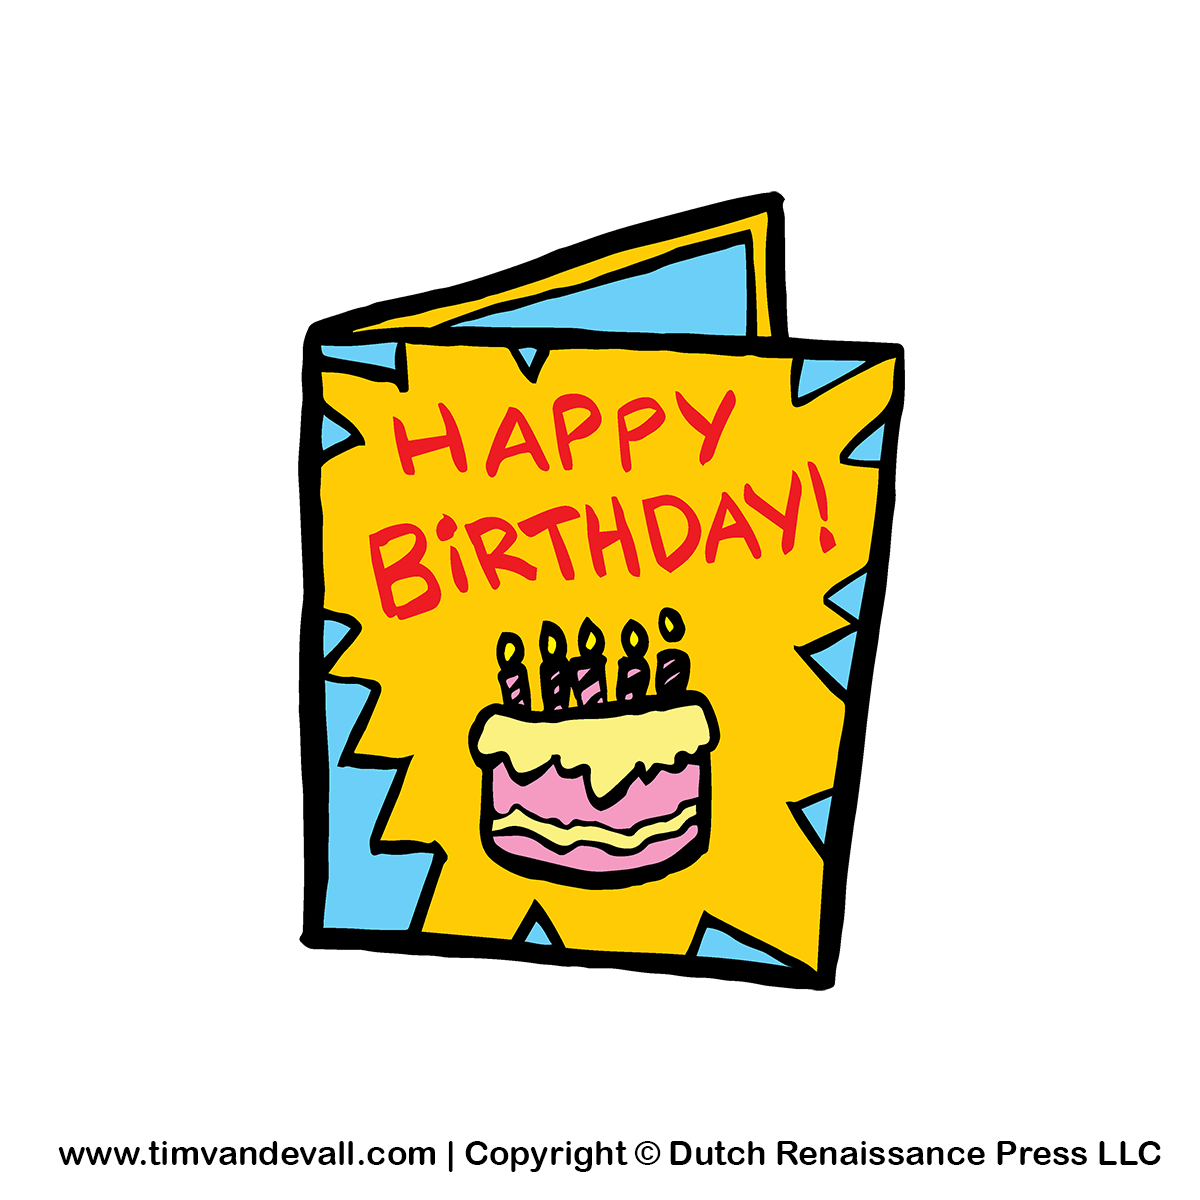 Birthday Card Clipart PNG Image for Birthday Parties and Decorations